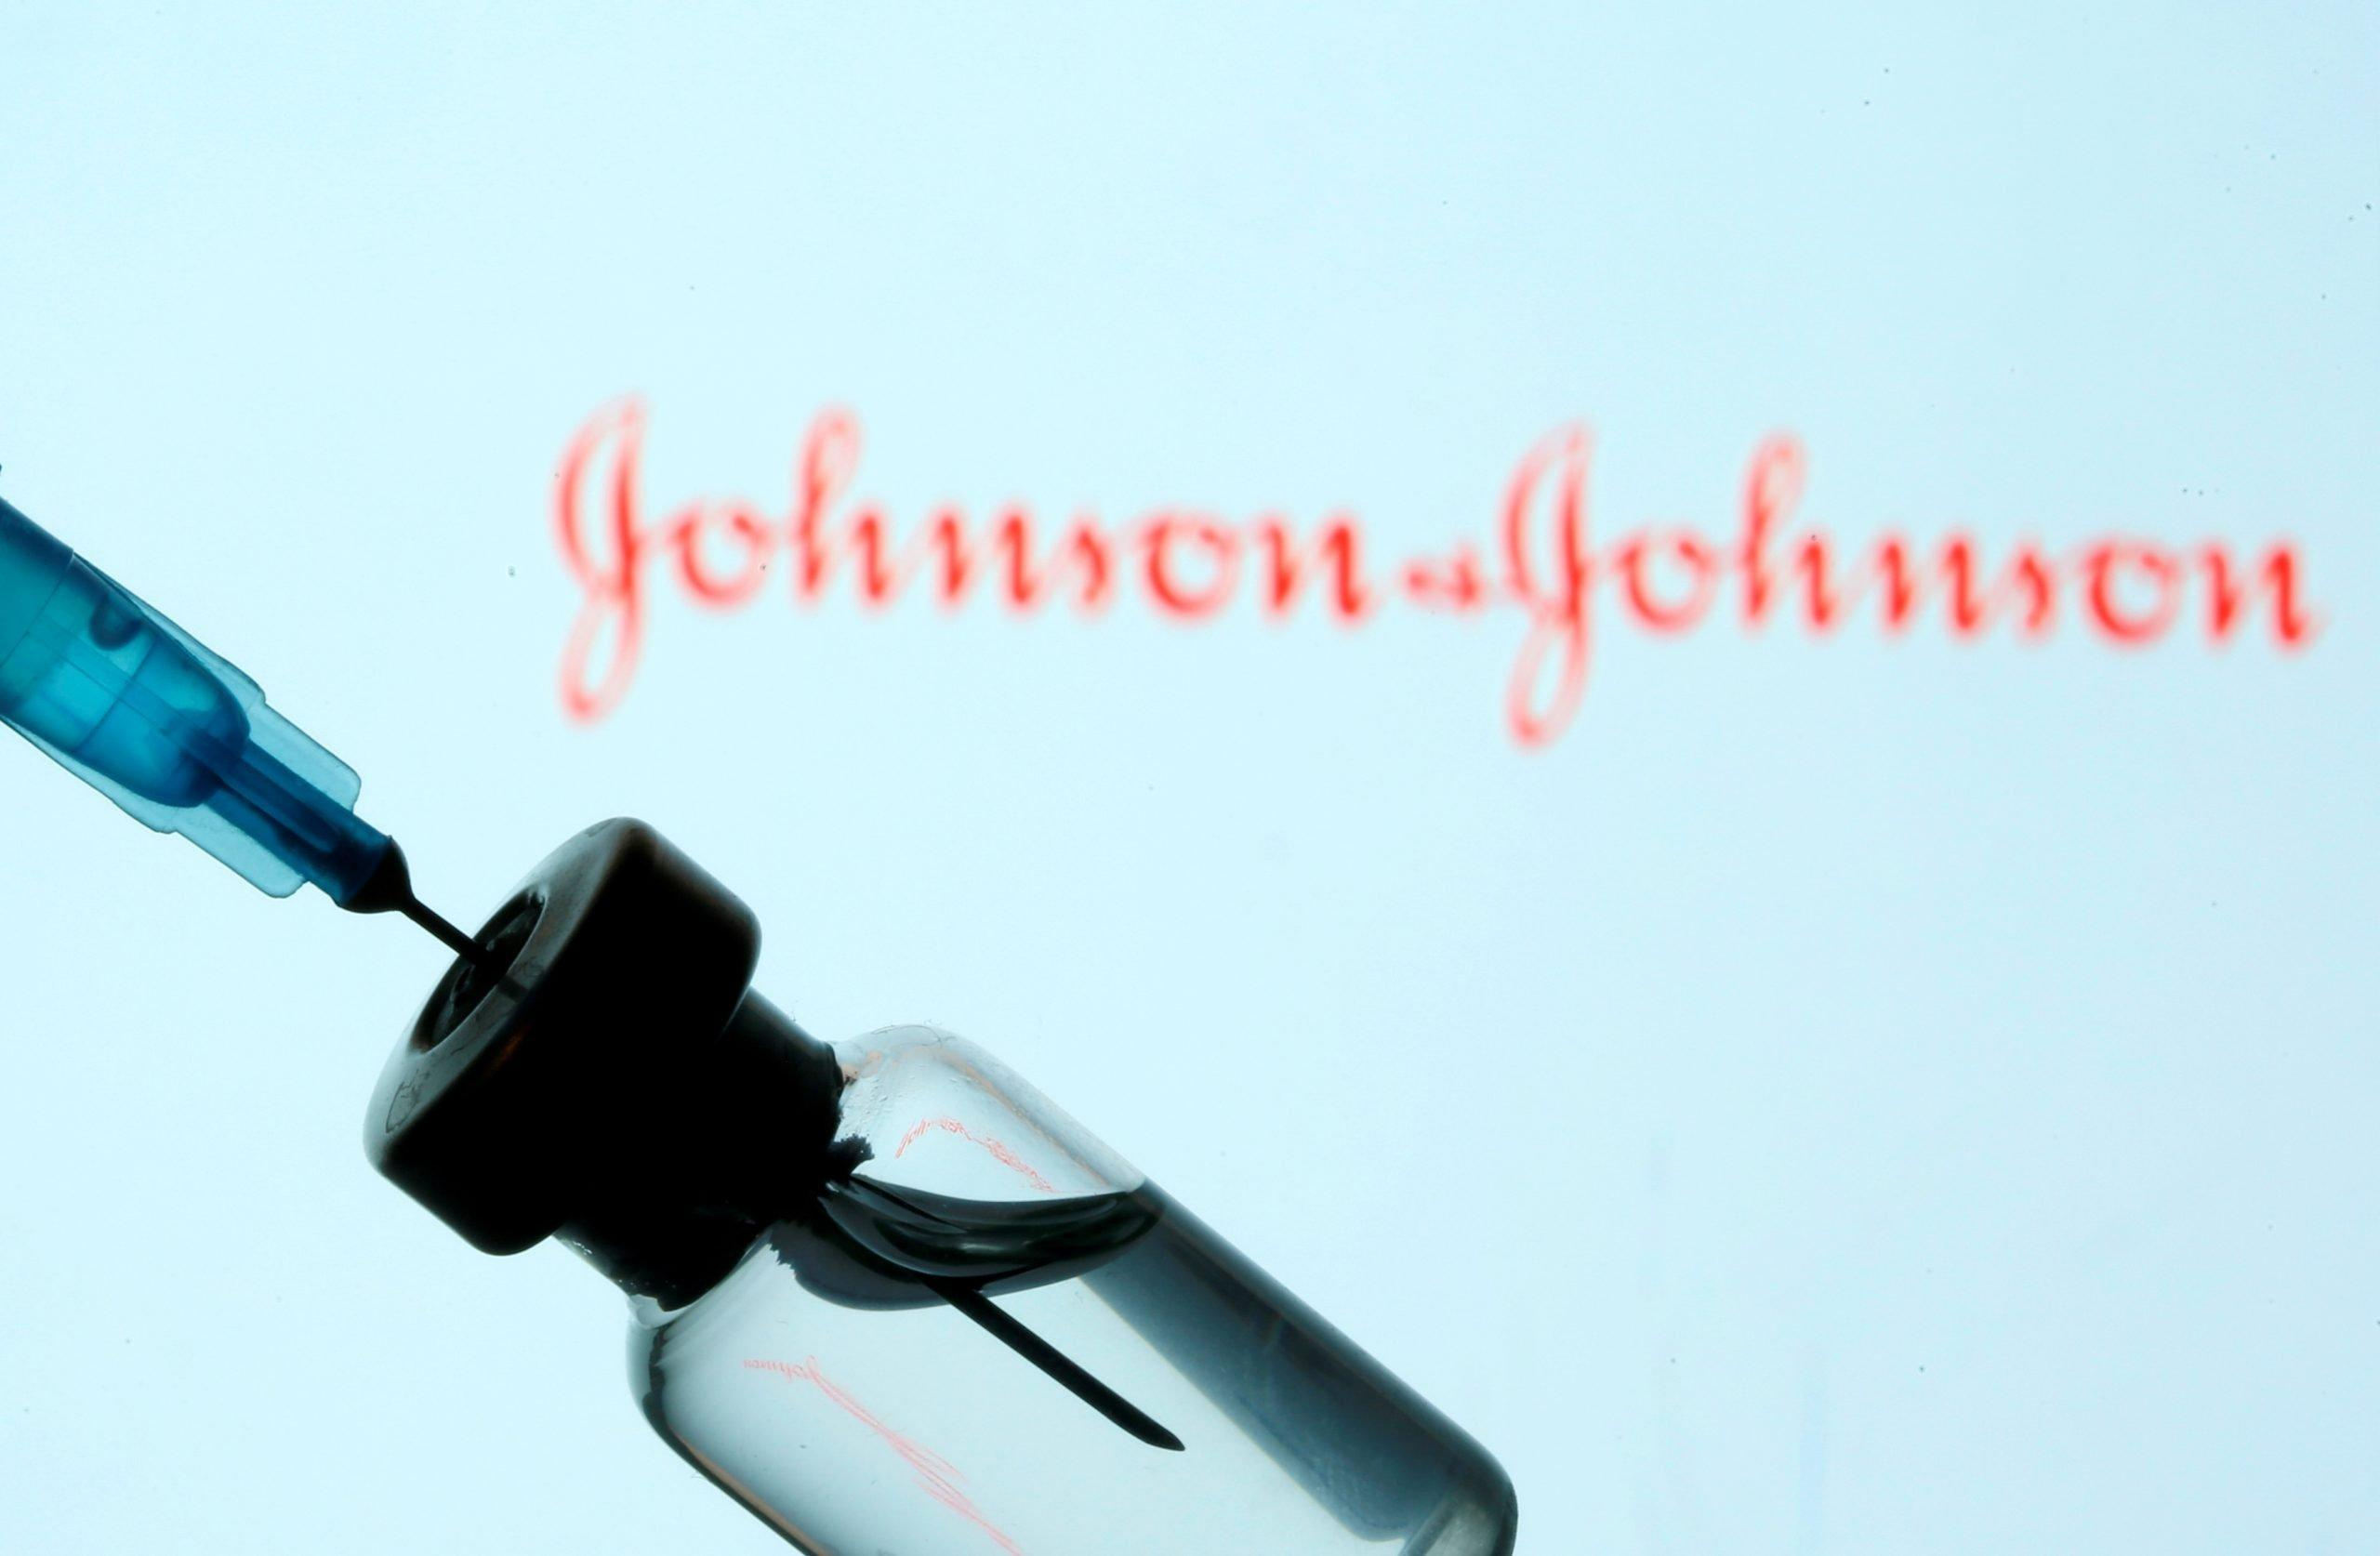 J&J vaccine adds to COVID-19 armoury with 66% global trial efficacy